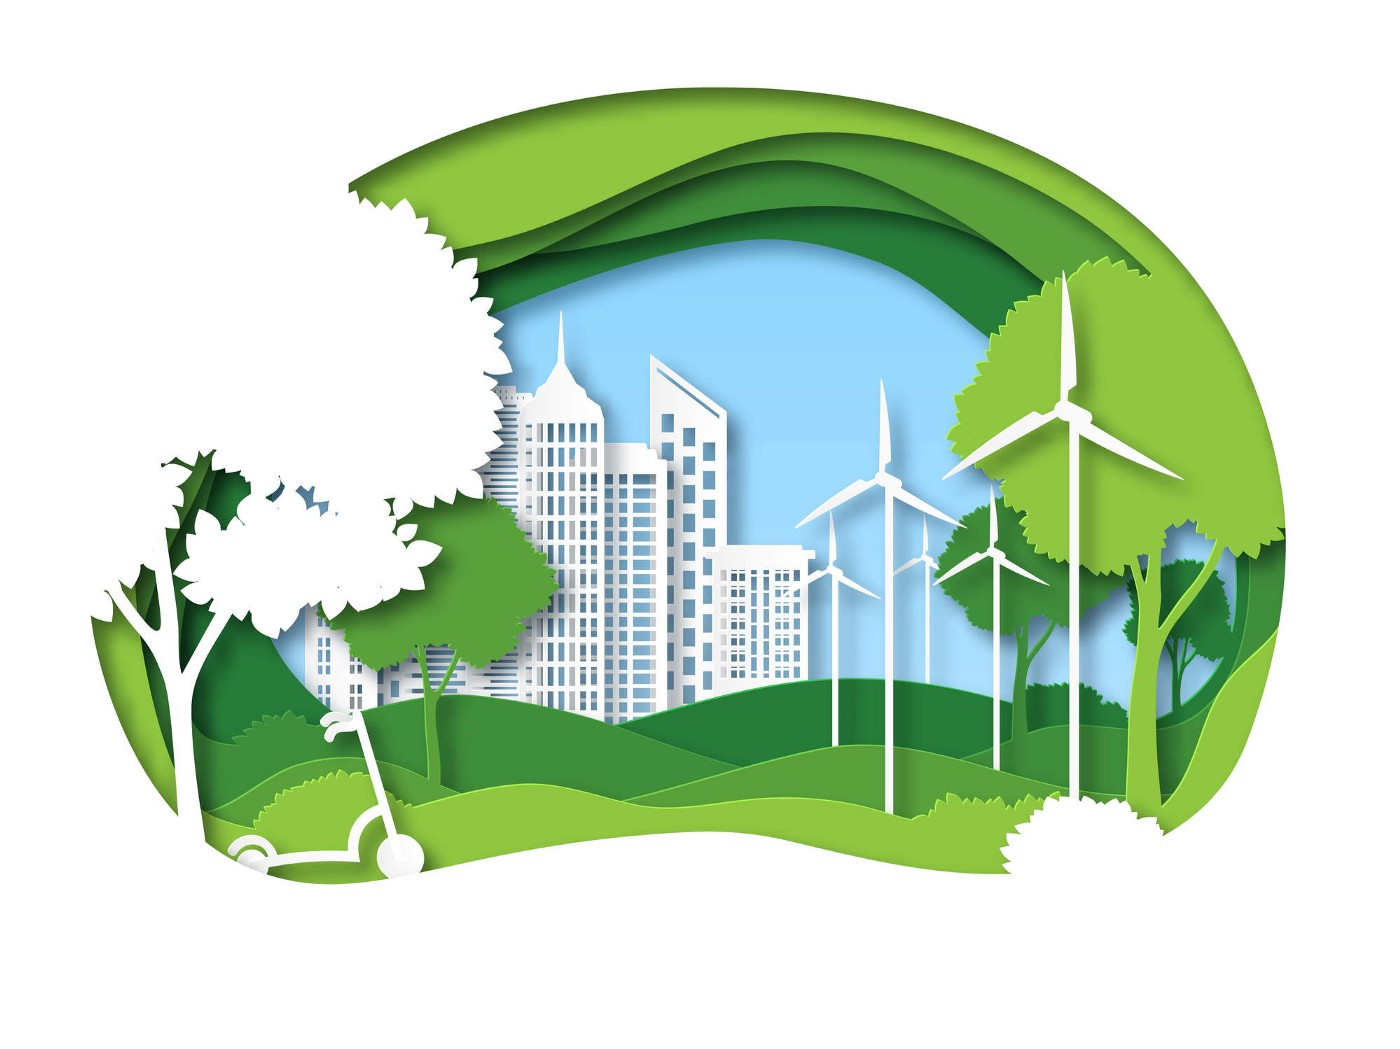 Eco city: Future ecosystem with building, tree and windmill.